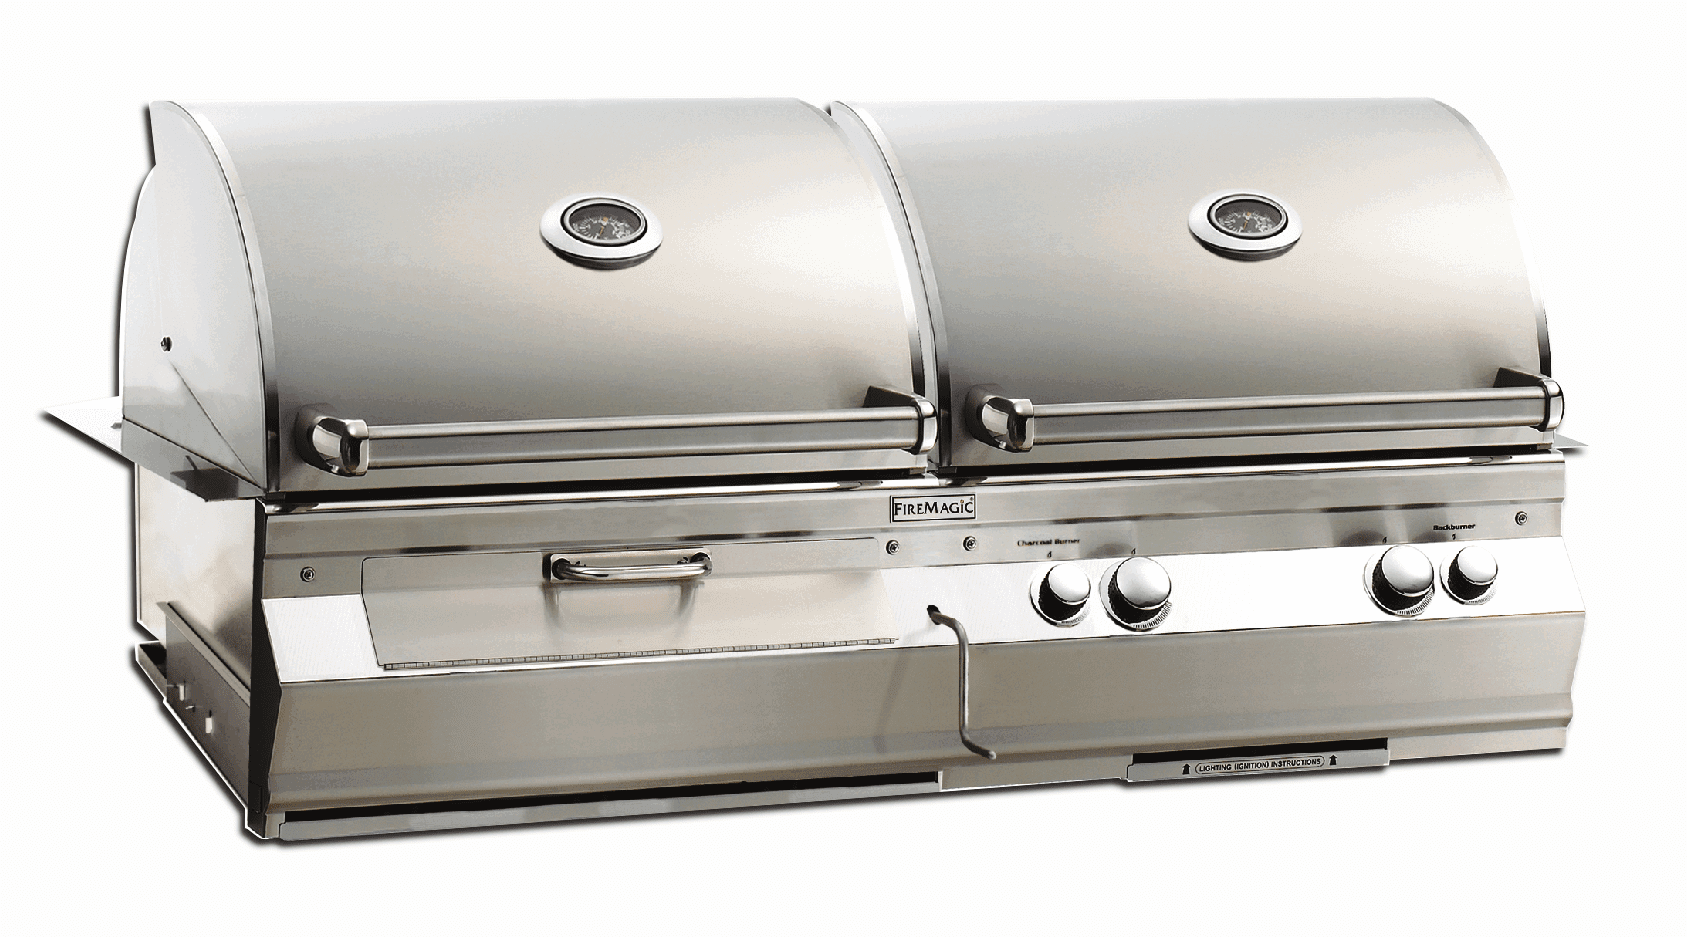 Fire Magic Dual Hood Charcoal and Gas grill built in A830i-7LAN-CB